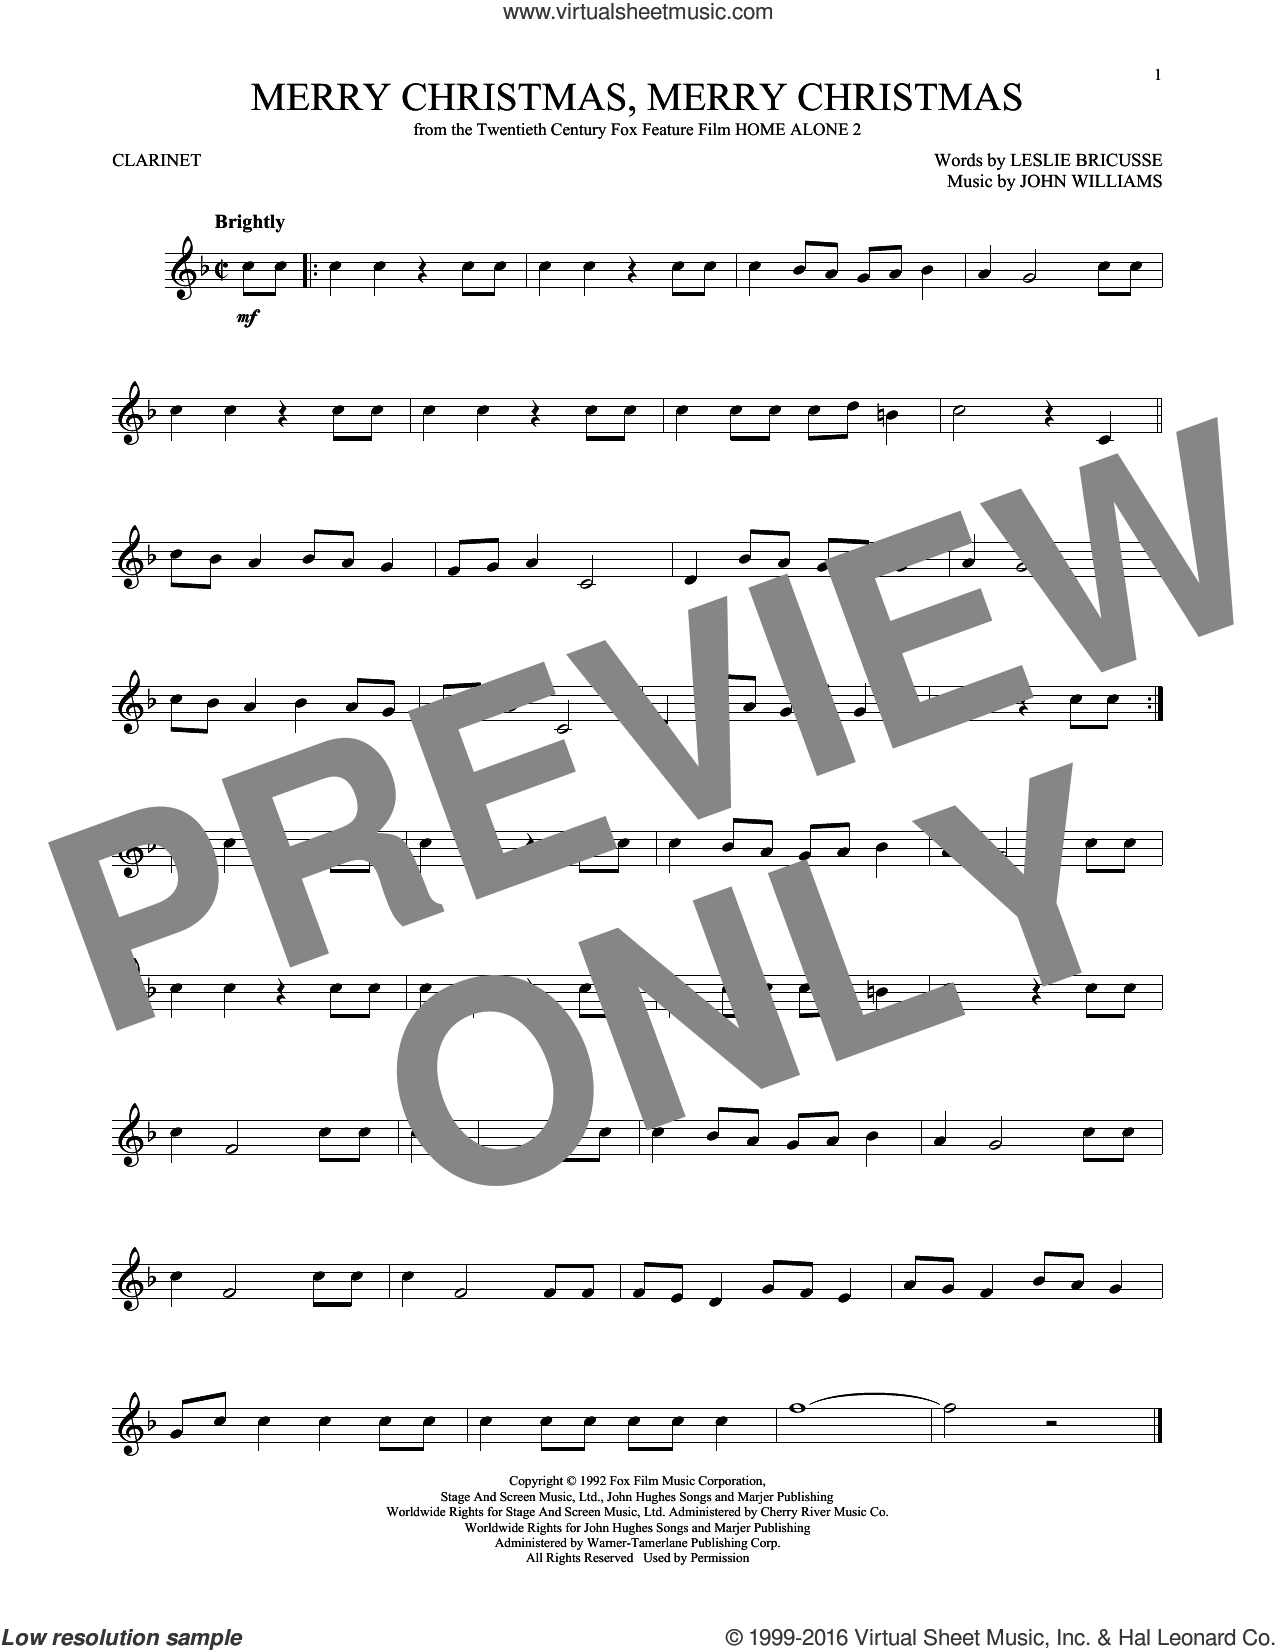 Merry Christmas, Merry Christmas sheet music for clarinet solo by John Williams and Leslie Bricusse, intermediate skill level